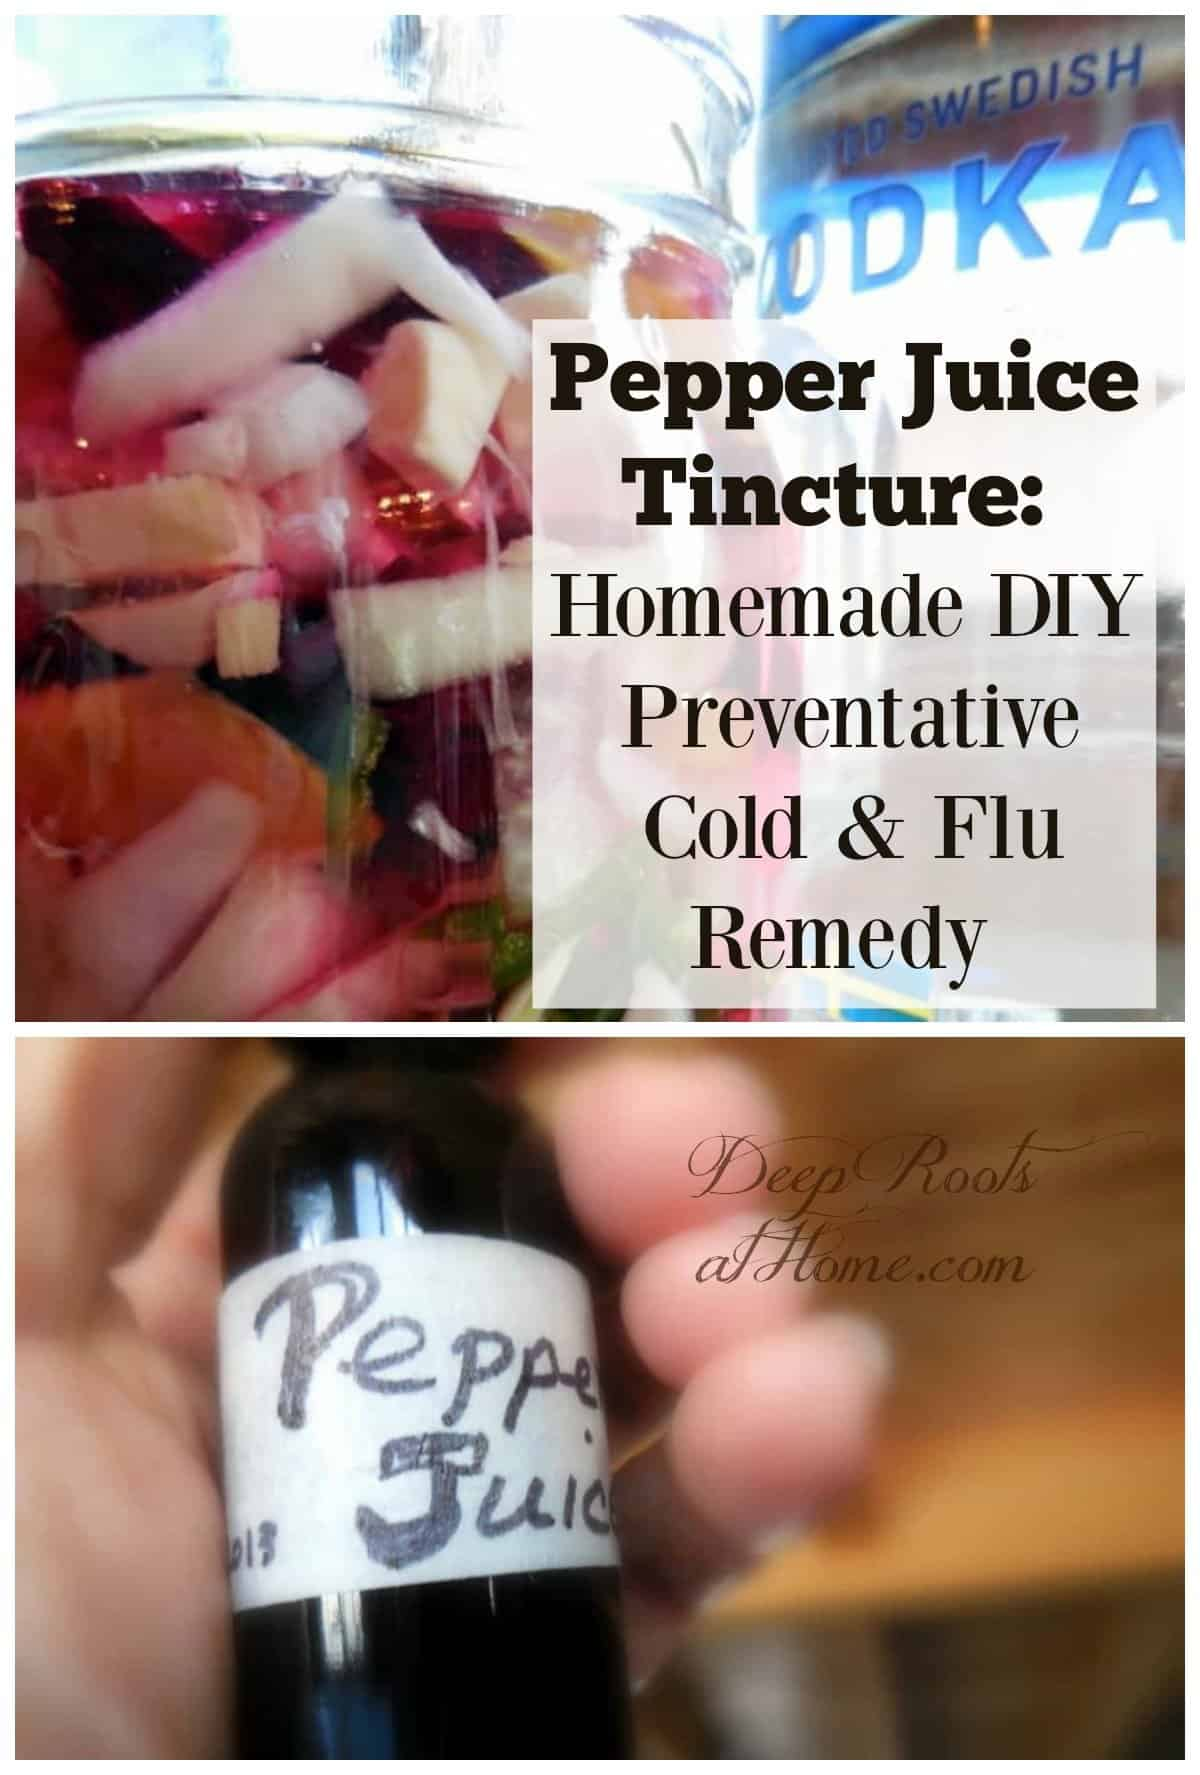 Pepper Juice Tincture: A Homemade Preventative Cold and Flu Remedy. Chopped up horseradish, red beets, ginger, garlic, on